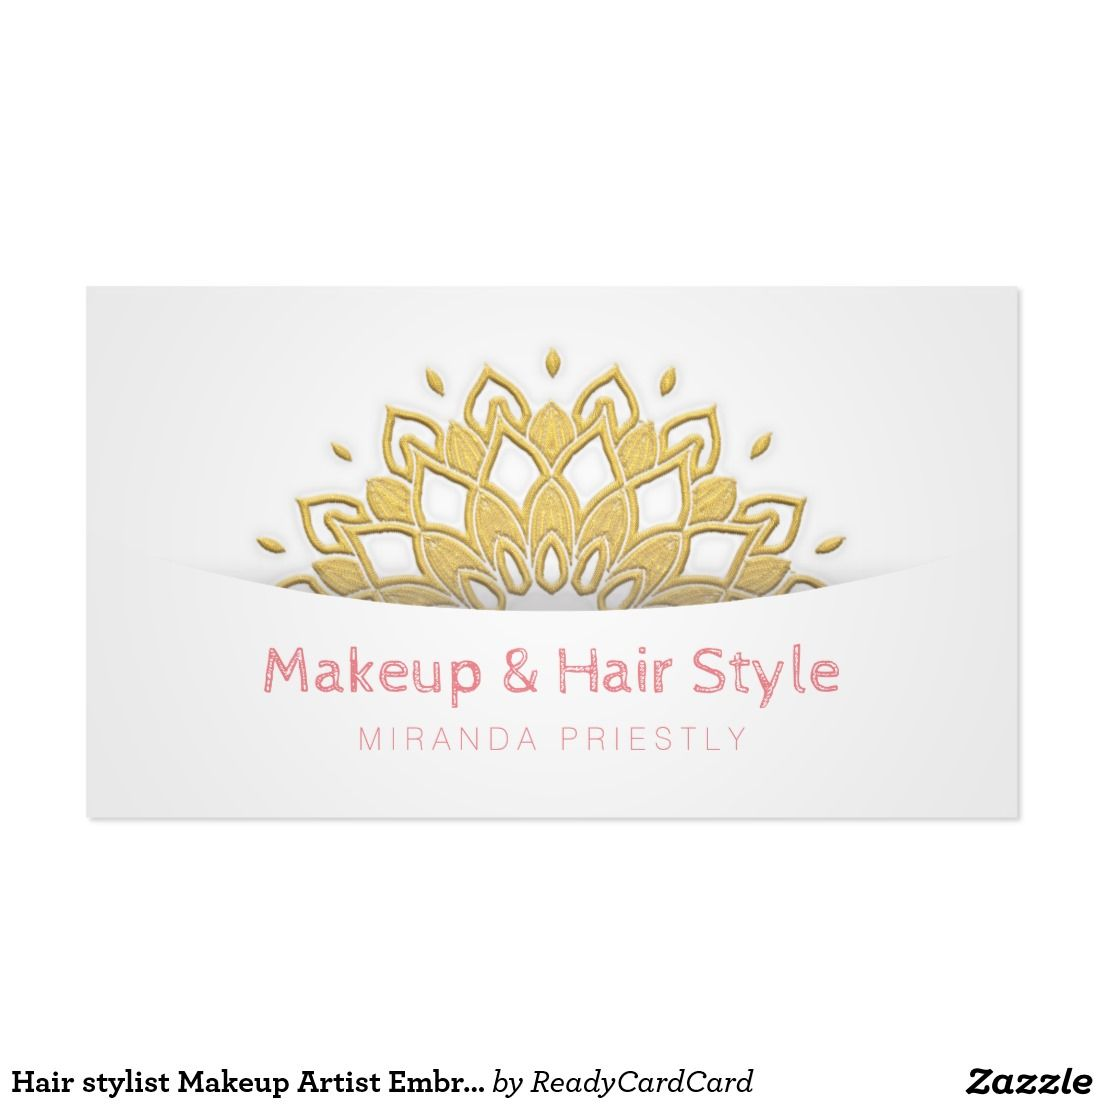 Hair stylist Makeup Artist Embroidery Floral Lotus Business Card ...